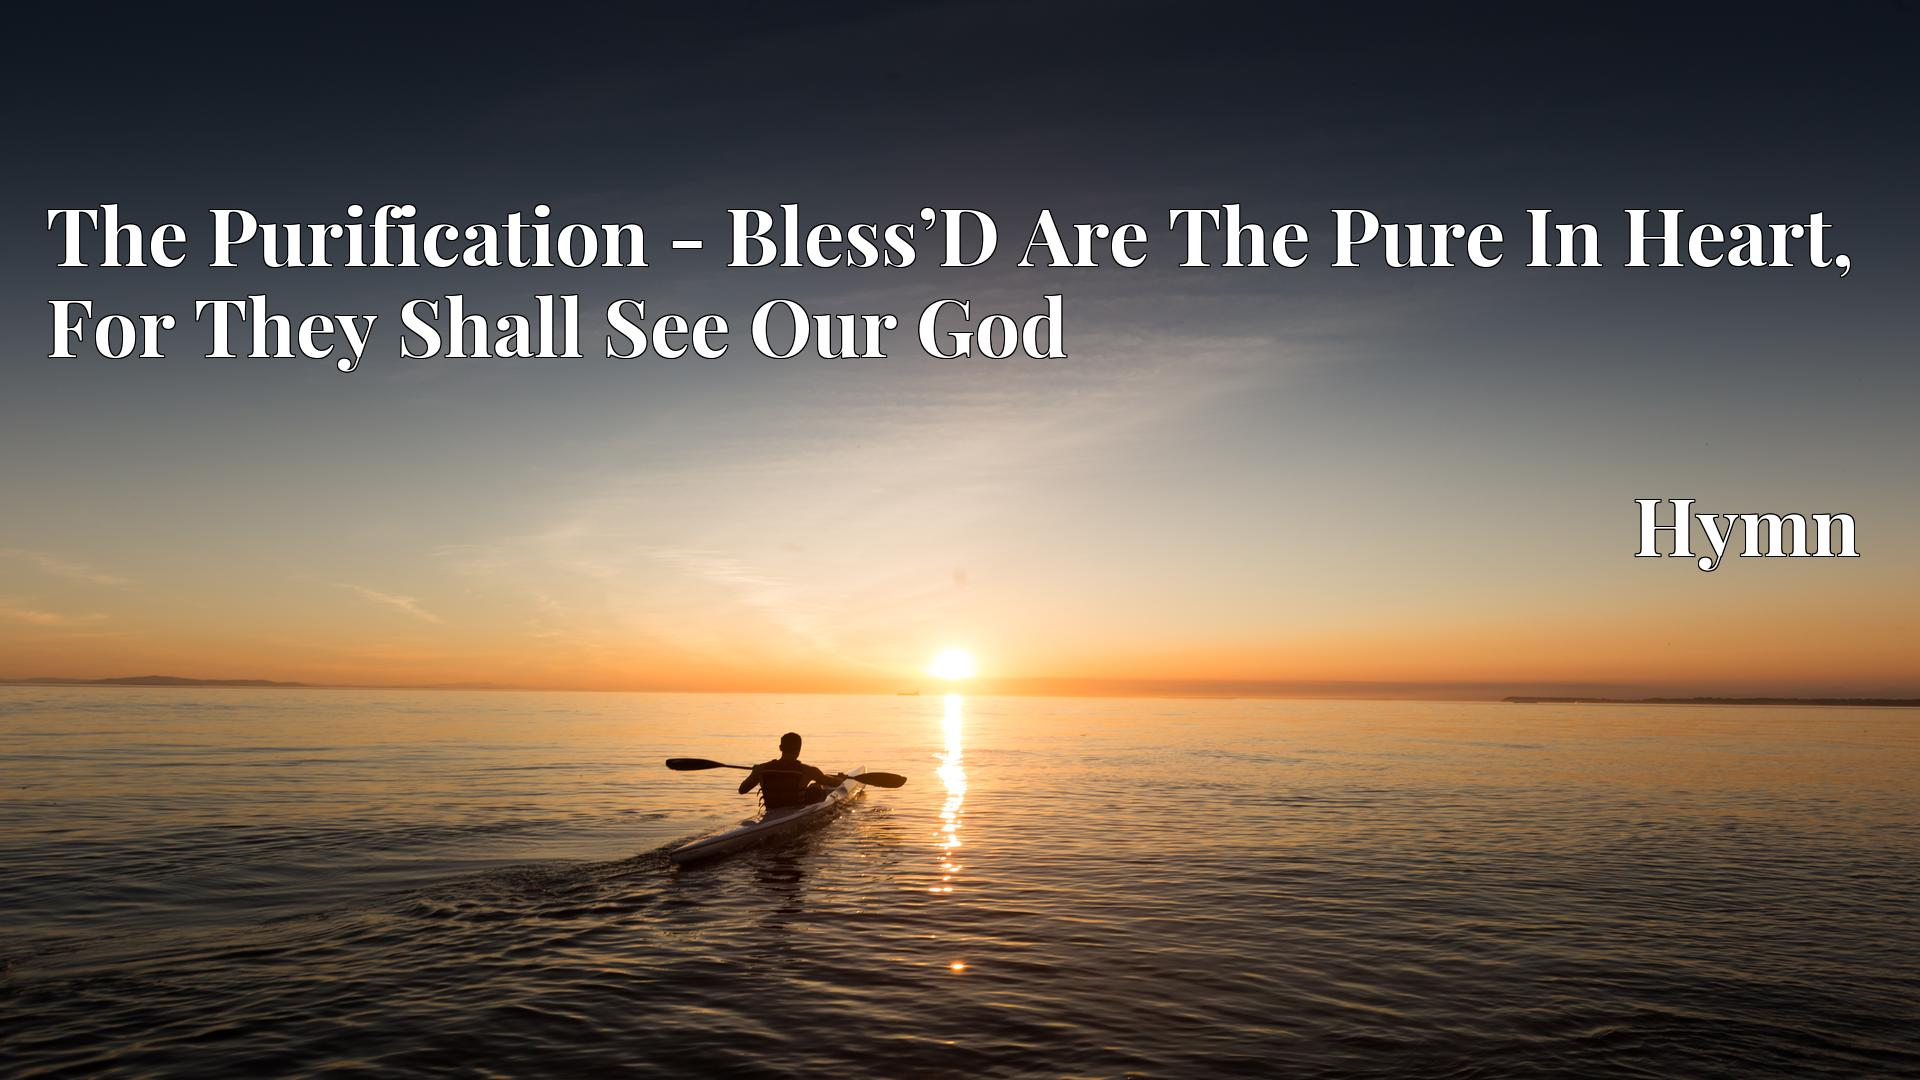 The Purification - Bless'D Are The Pure In Heart, For They Shall See Our God Hymn